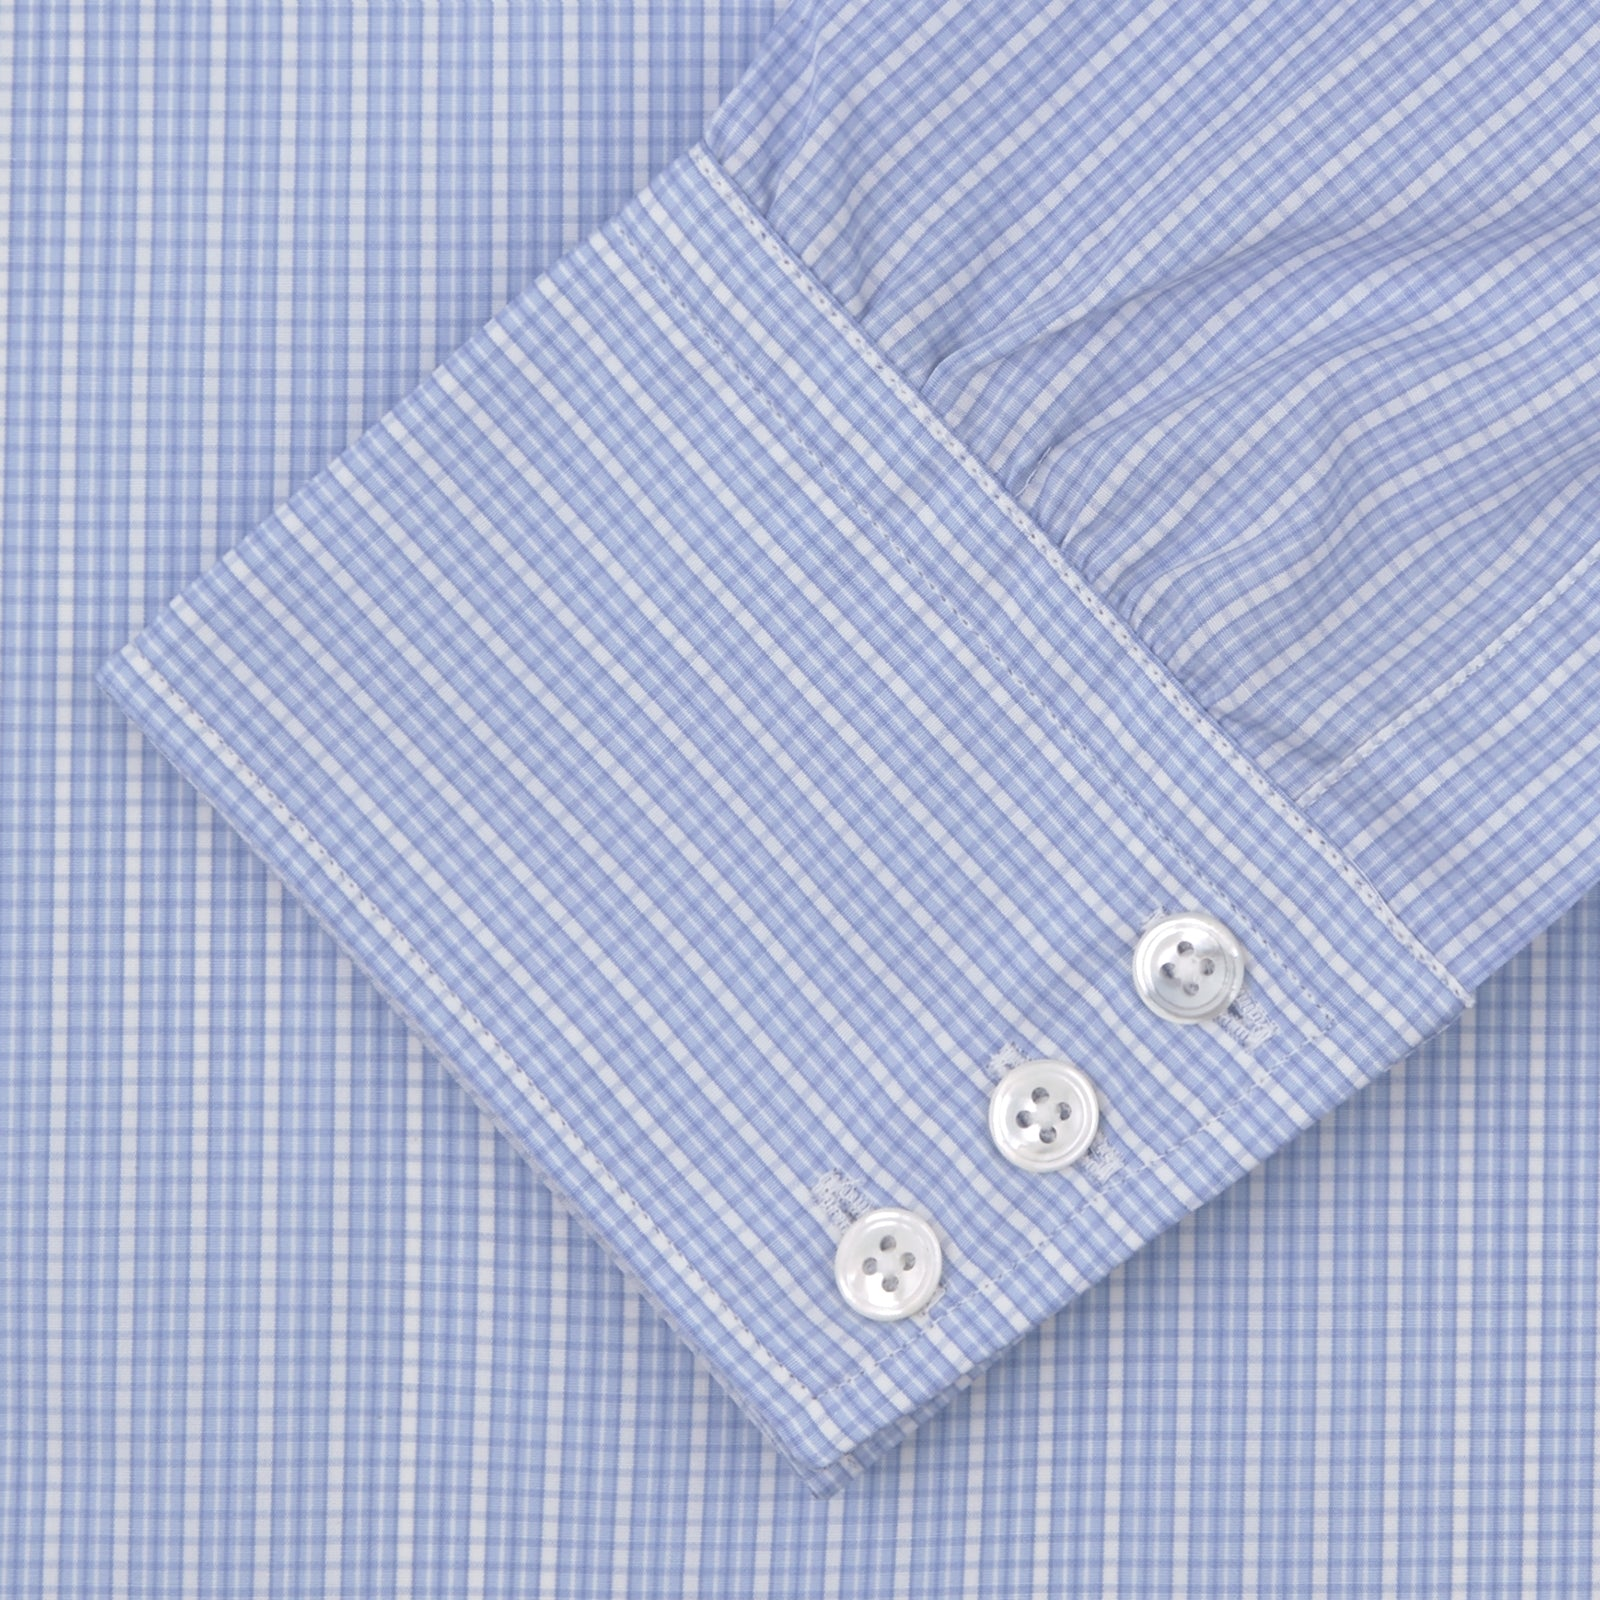 Light Blue Rich Check Shirt with T&A Collar and 3-Button Cuffs